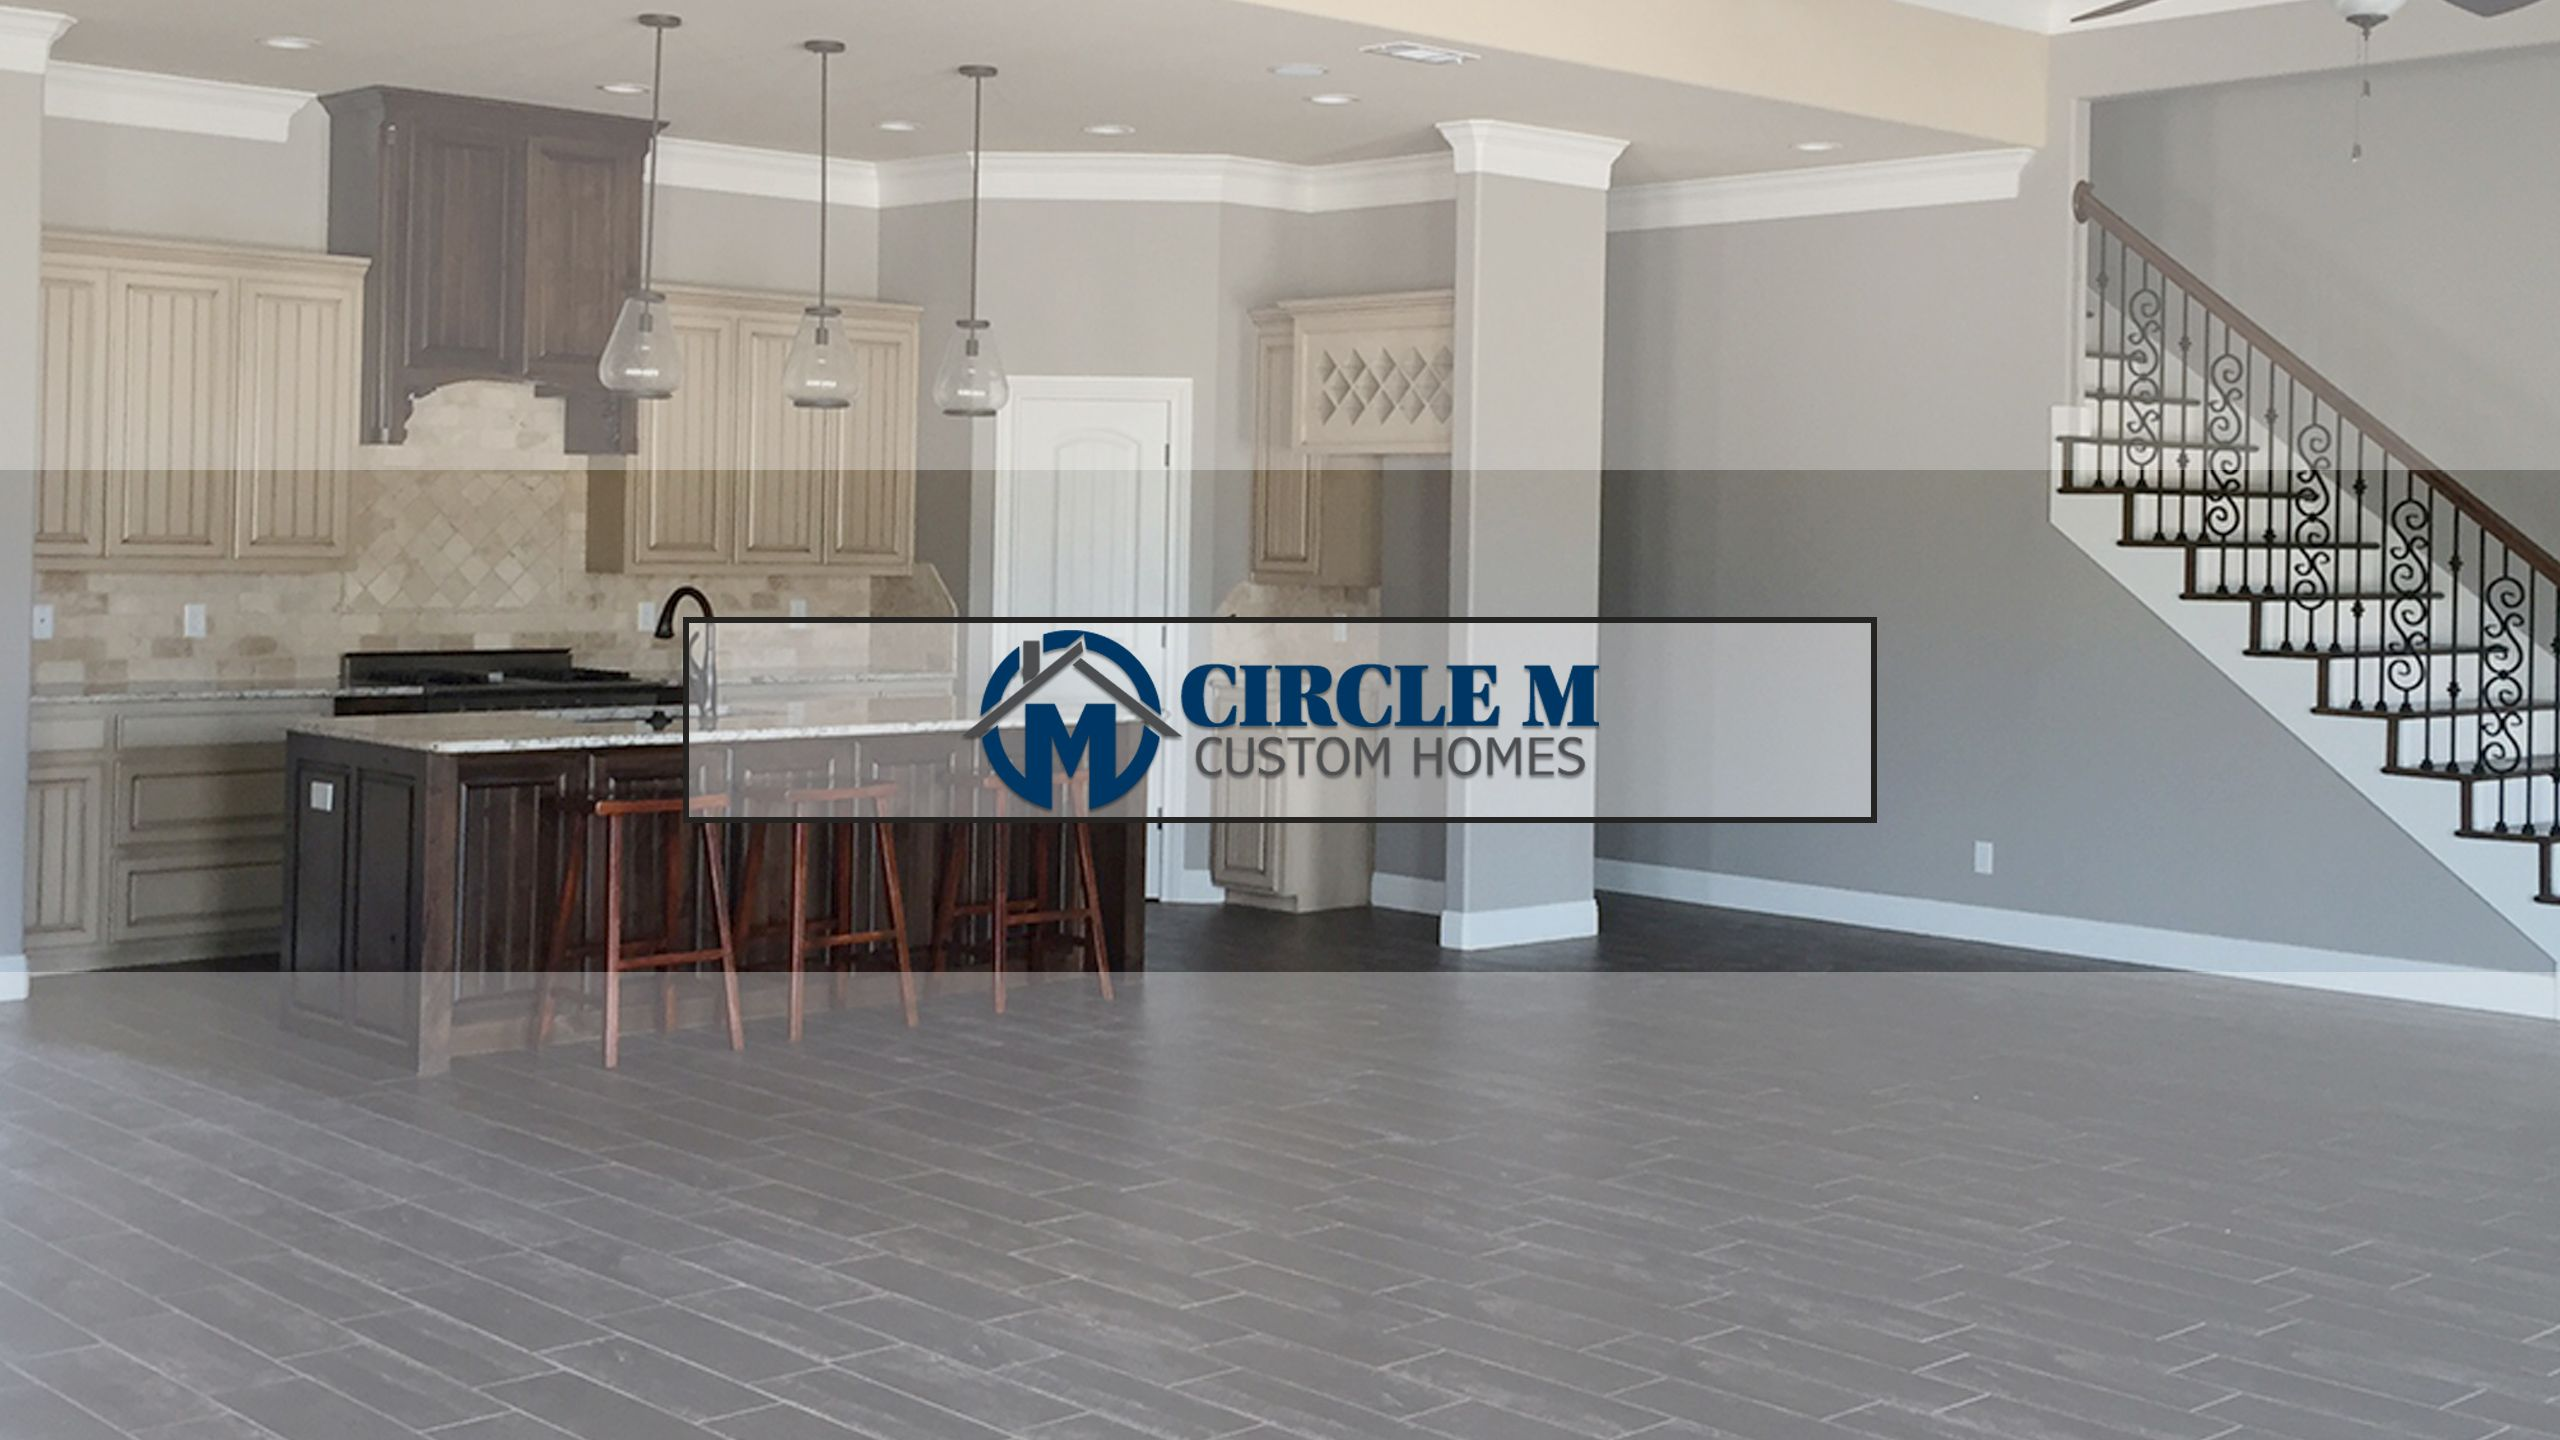 Circle m custom homes llc is a construction company in san angelo circle m custom homes llc is a construction company in san angelo tx we offer blueprint design new construction home remodeling home additions and malvernweather Gallery